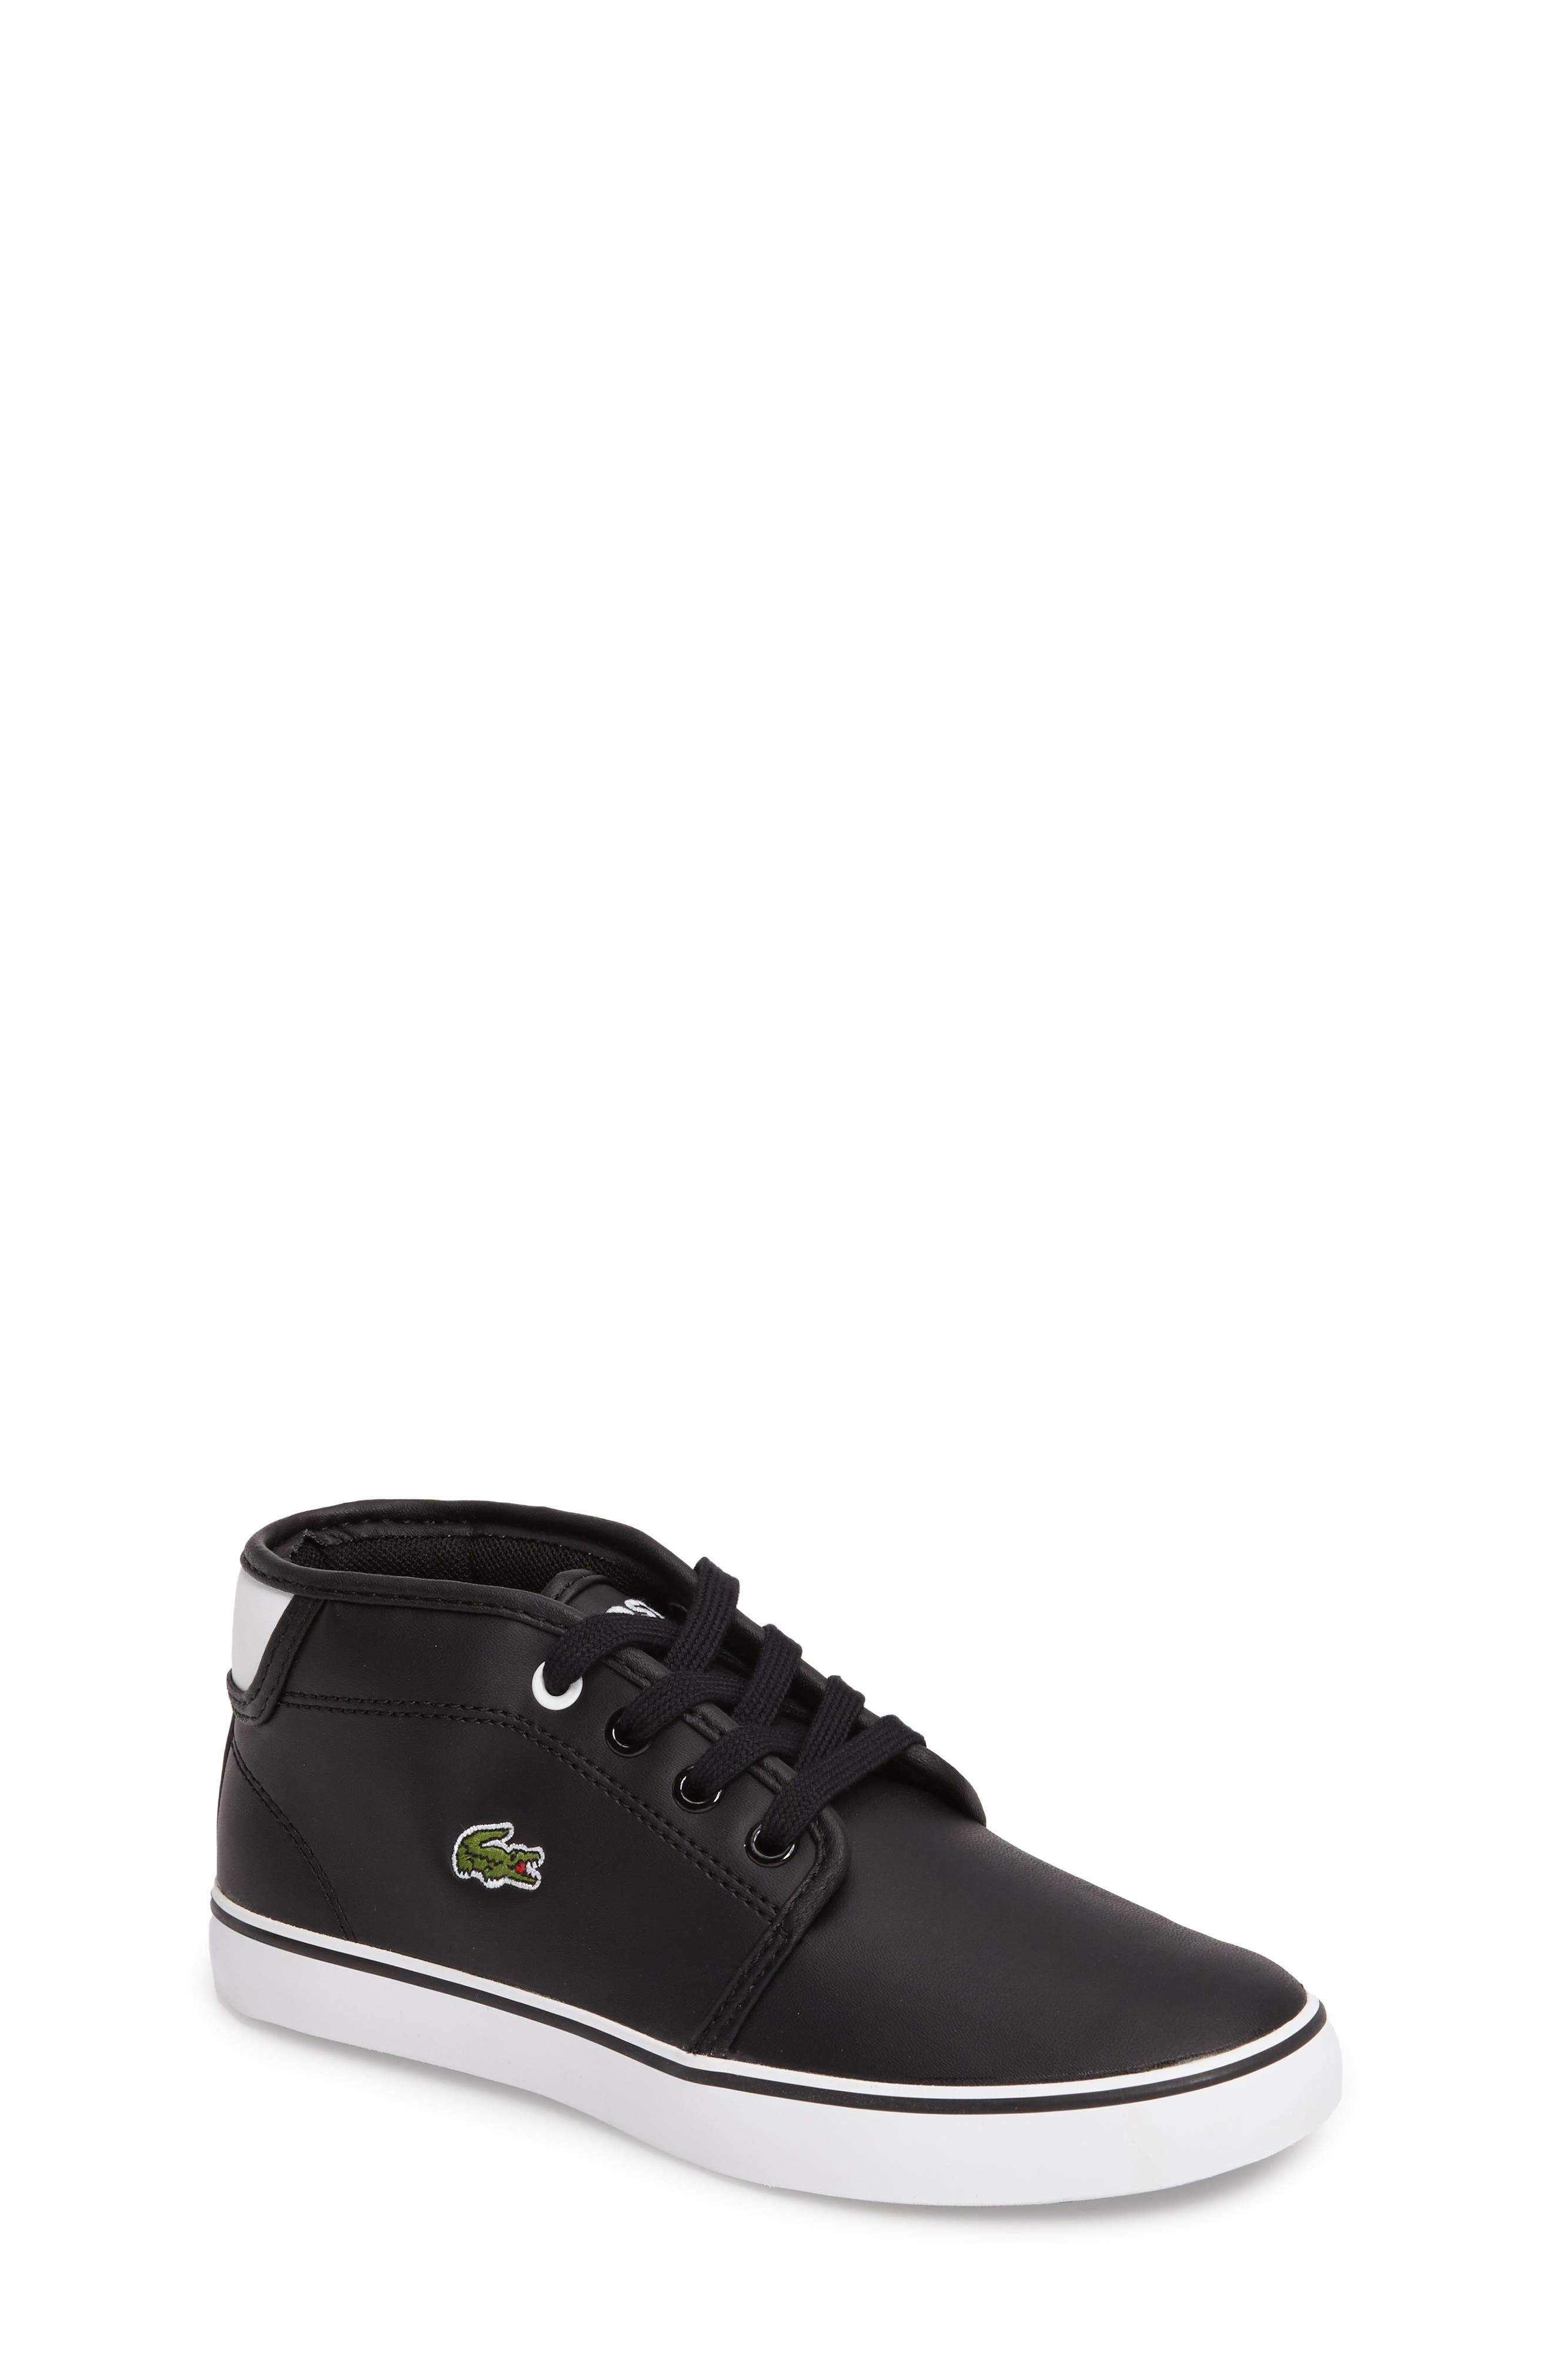 Ampthill High Top Sneaker,                         Main,                         color,